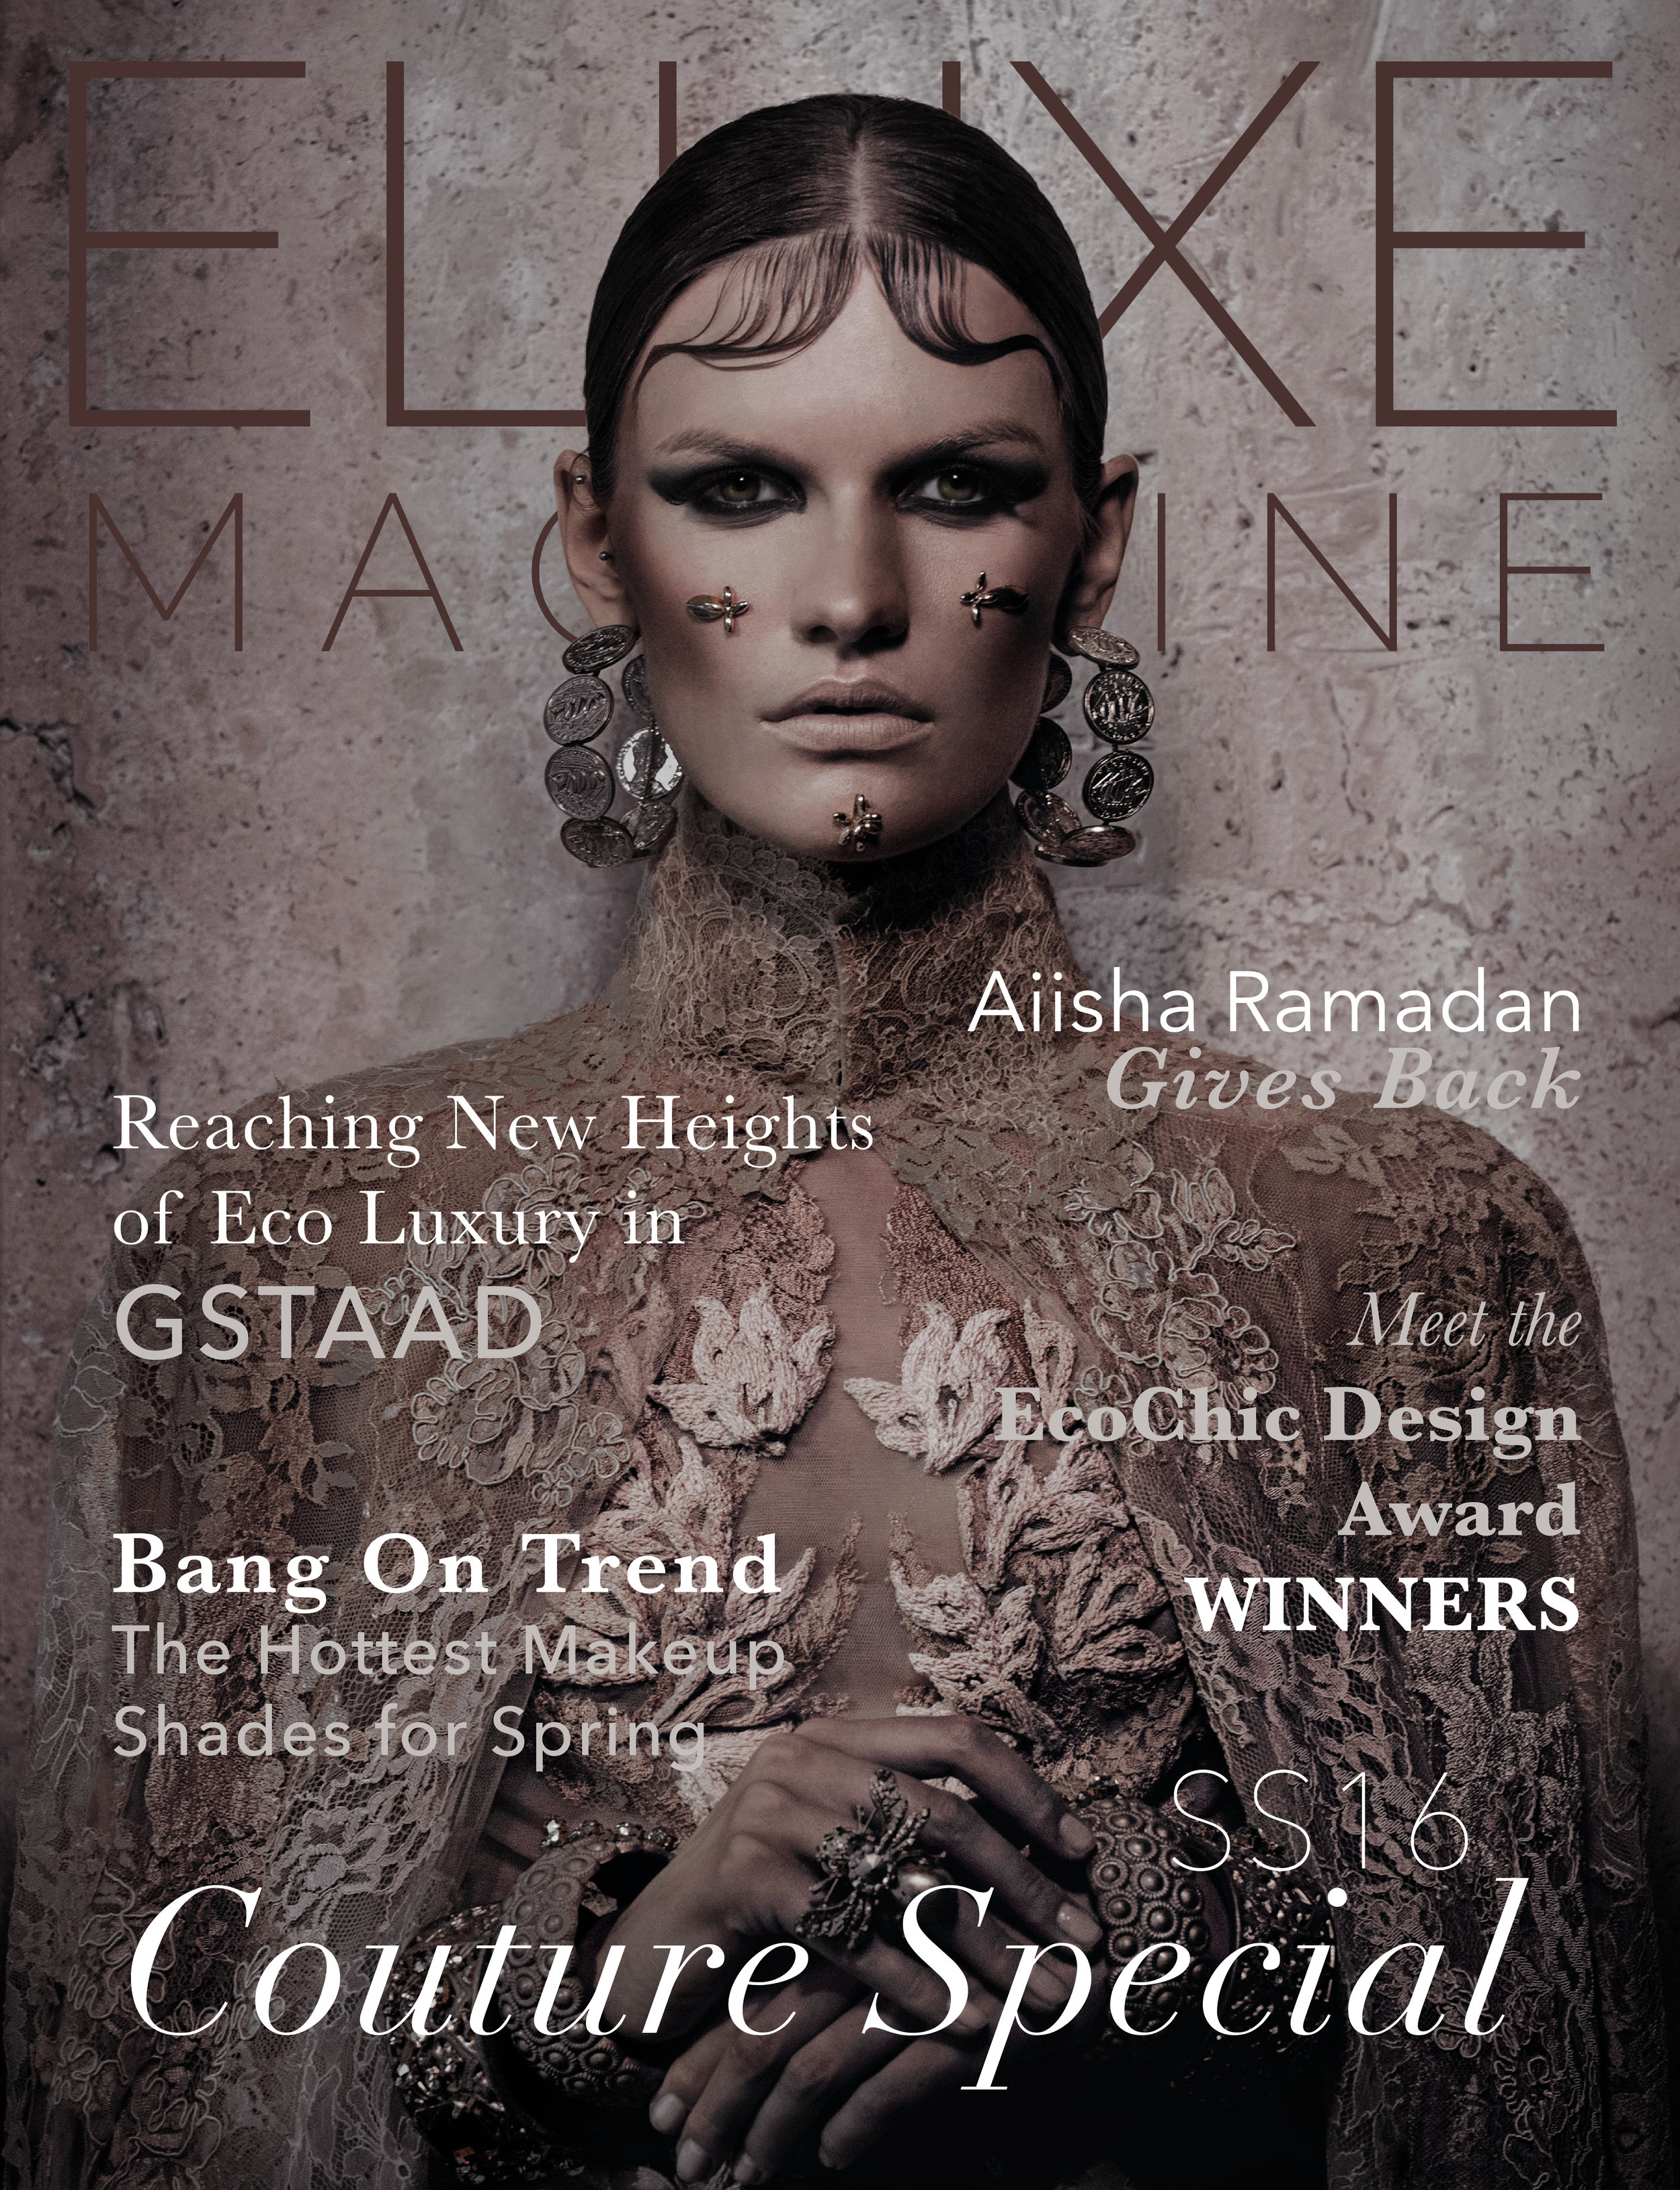 ELUXE . ISSUE 9 . The Couture Special cover.jpg